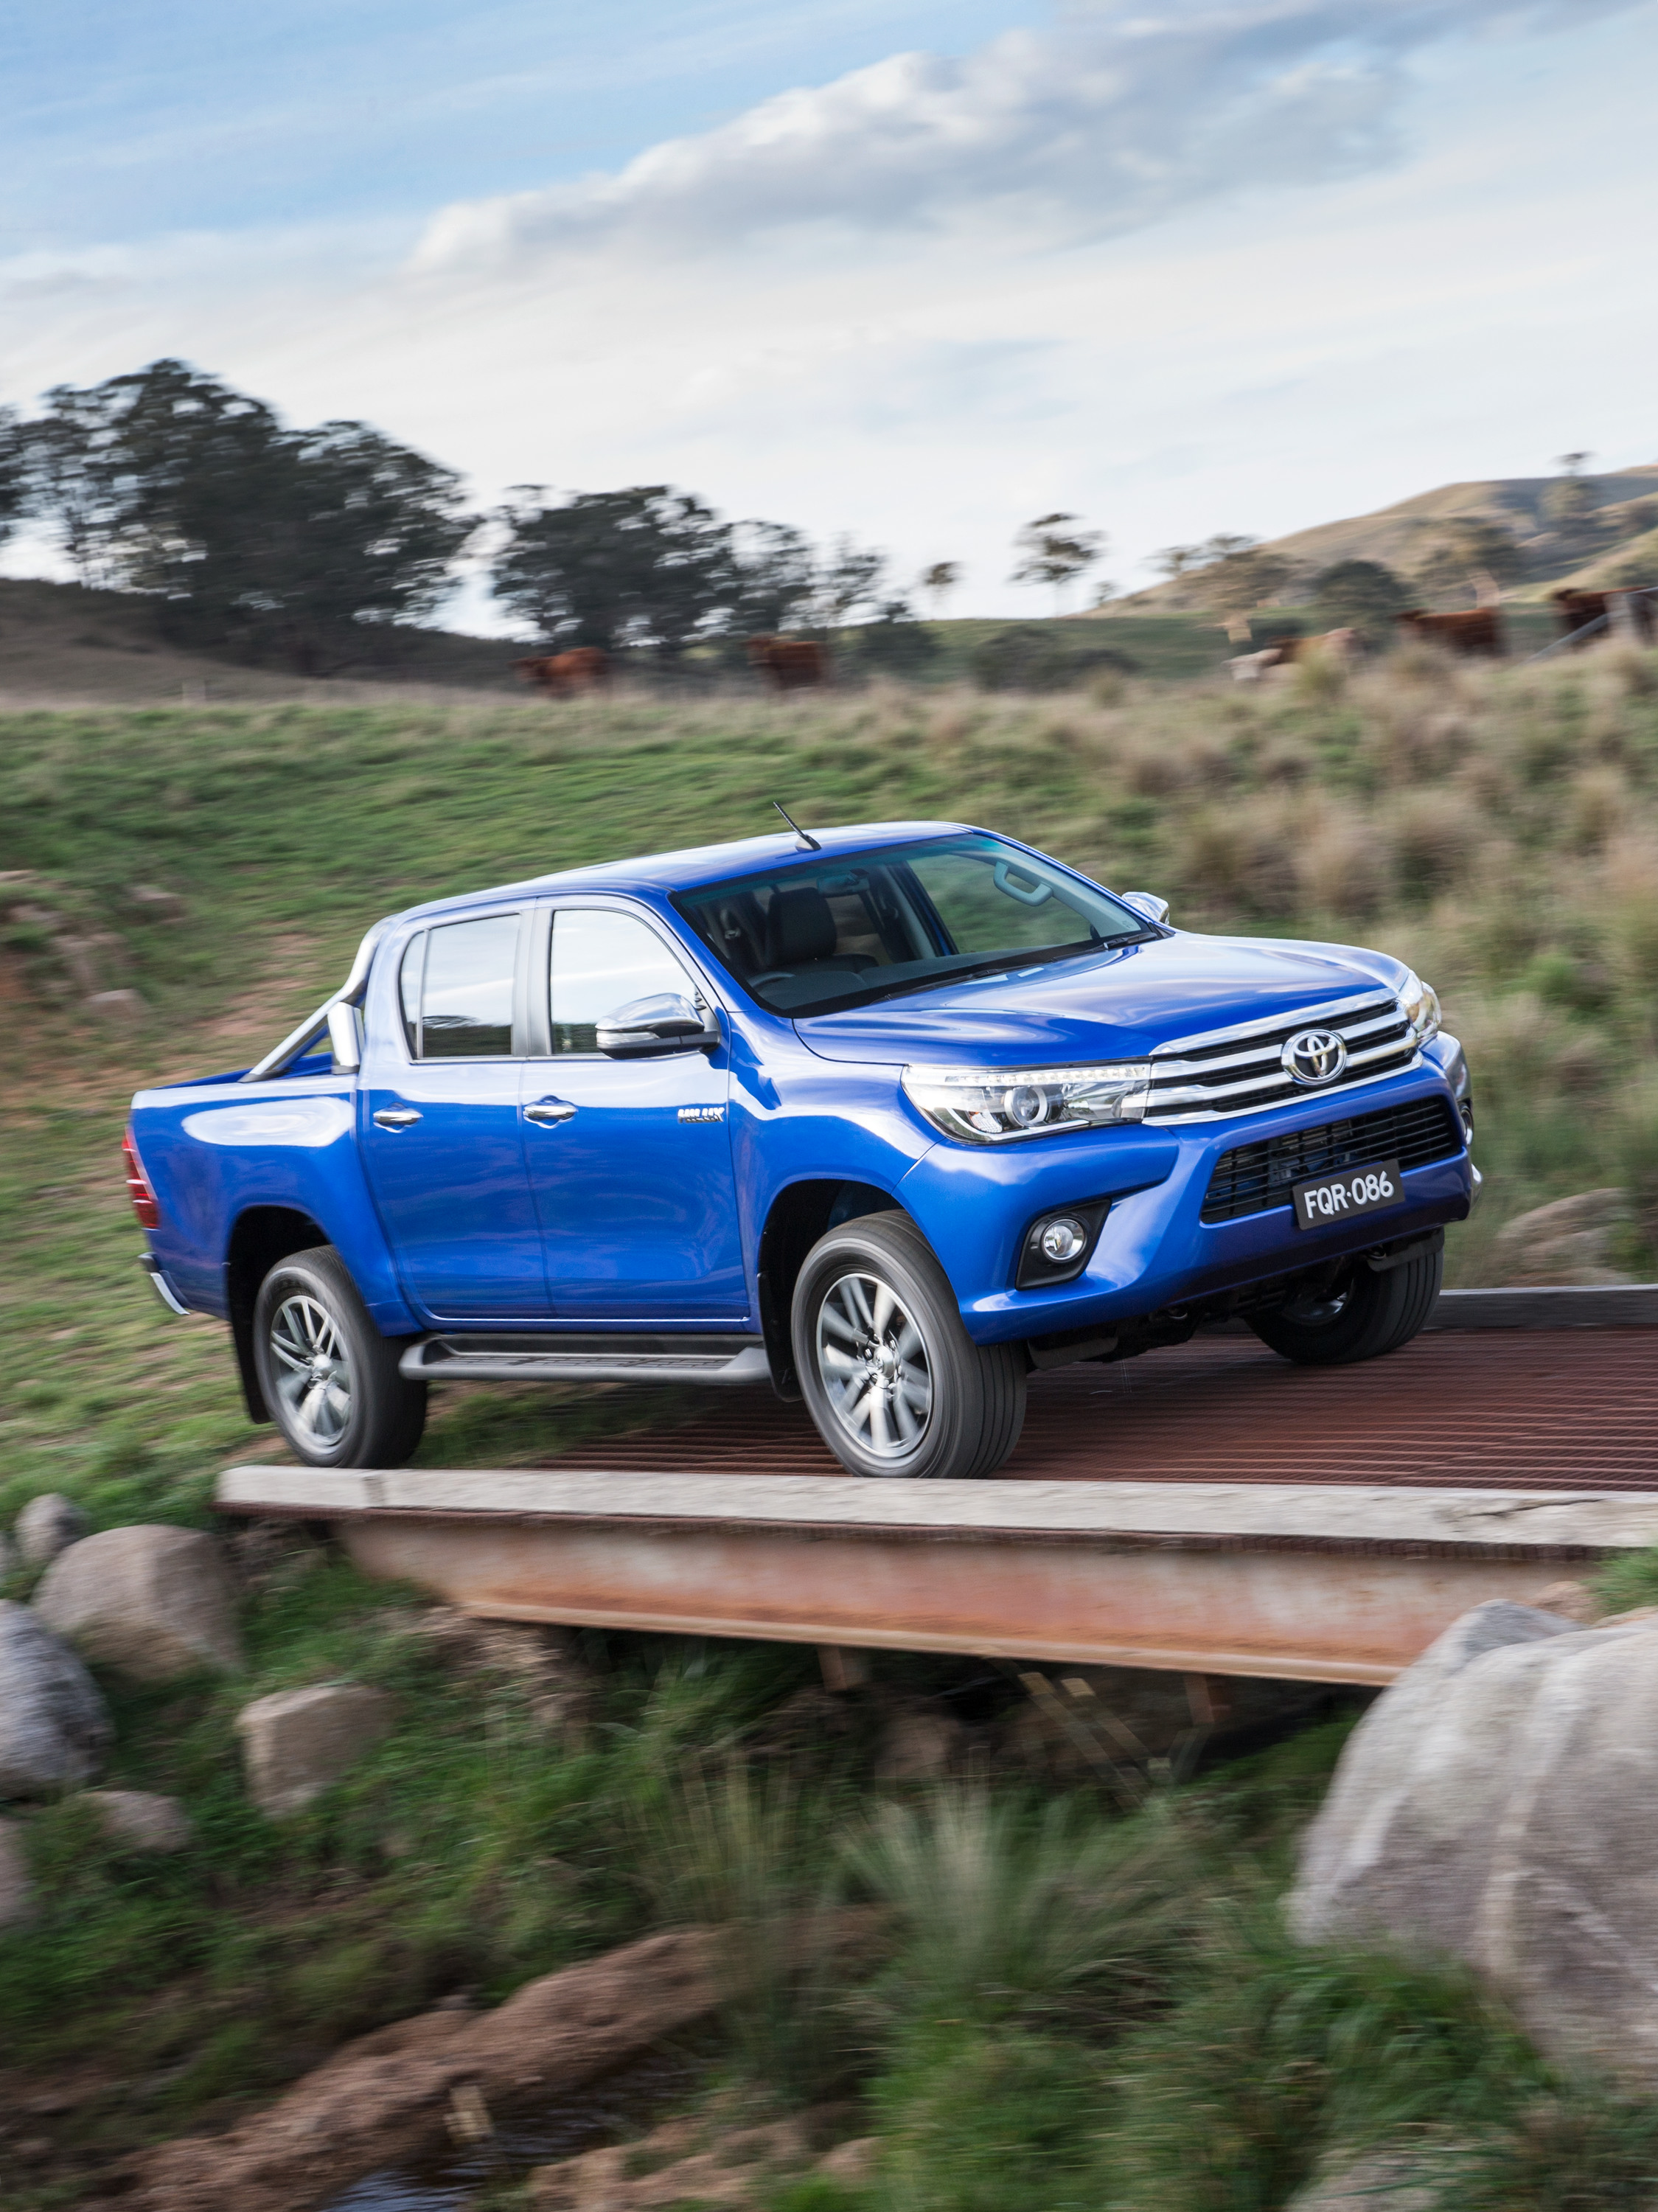 toyota hilux interior features revealed  australian market  caradvice